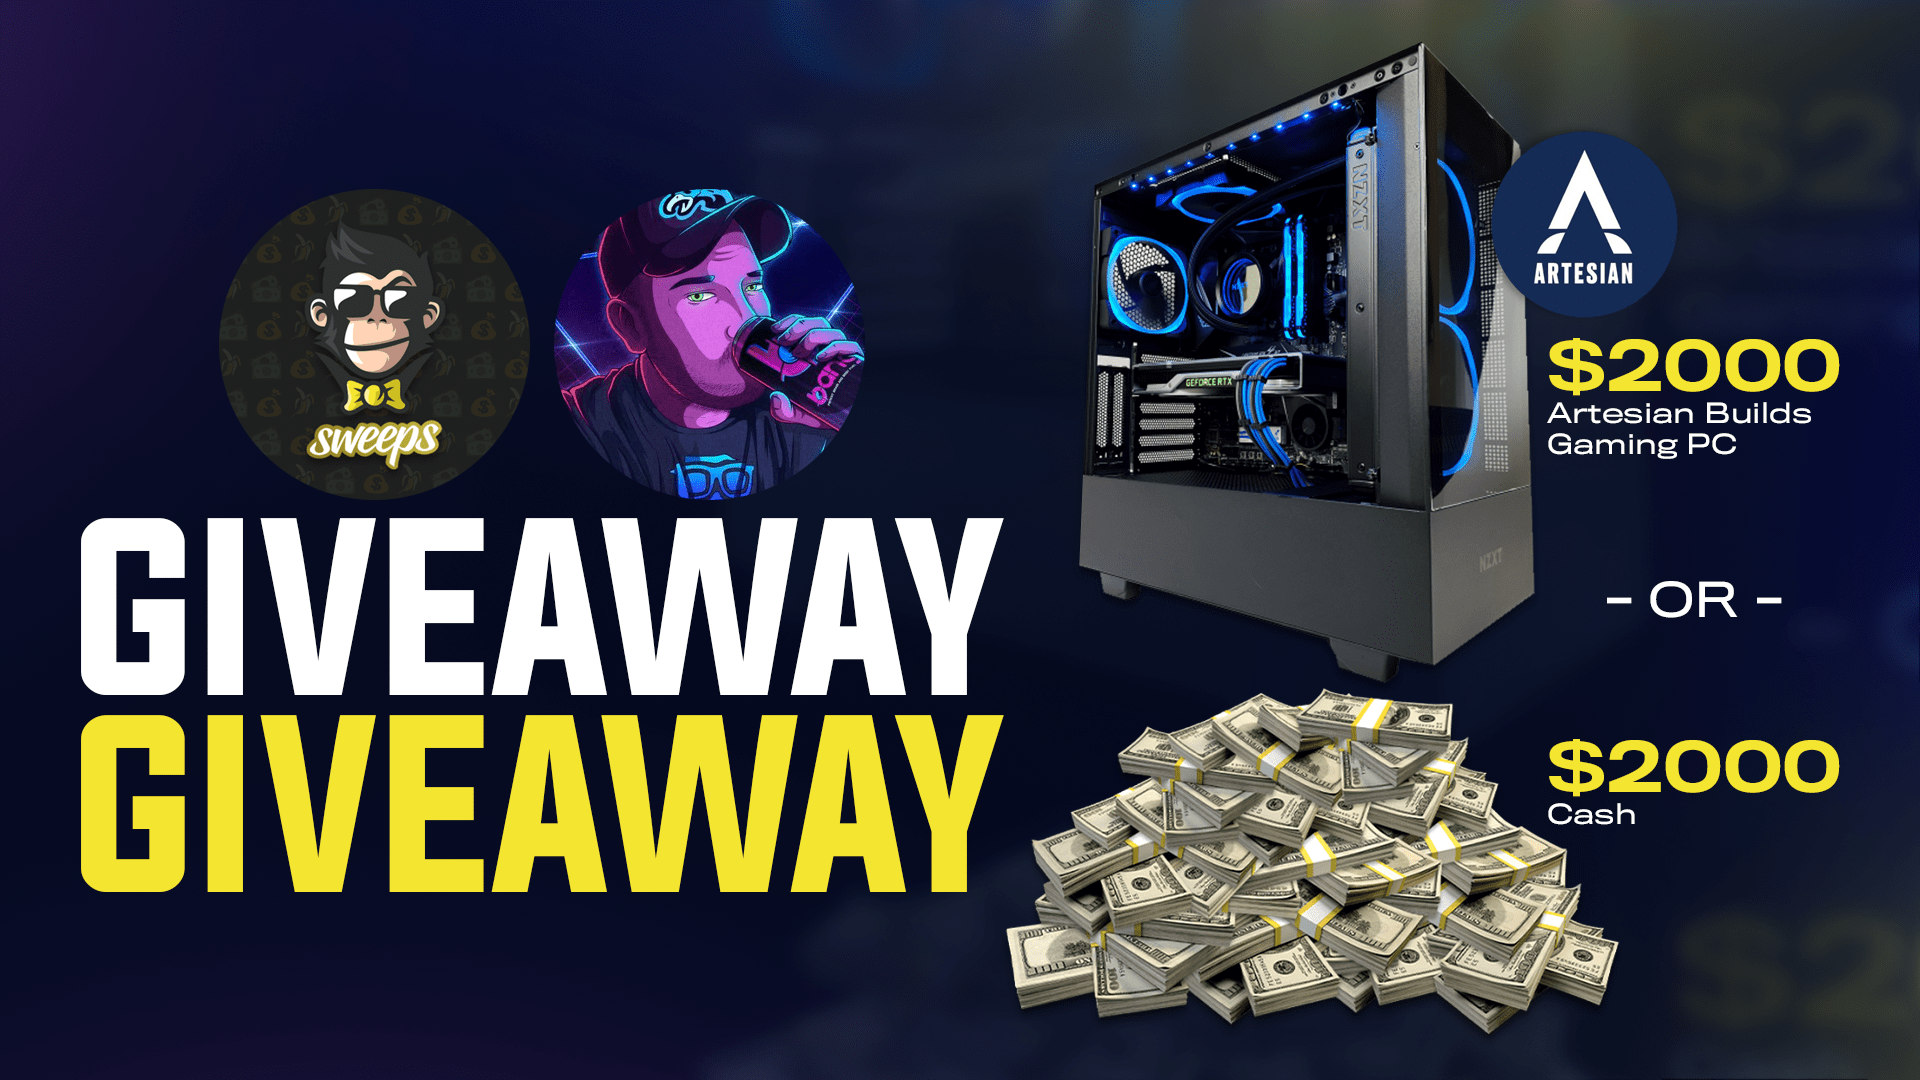 $2,000 Artesian Builds Gaming PC Giveaway